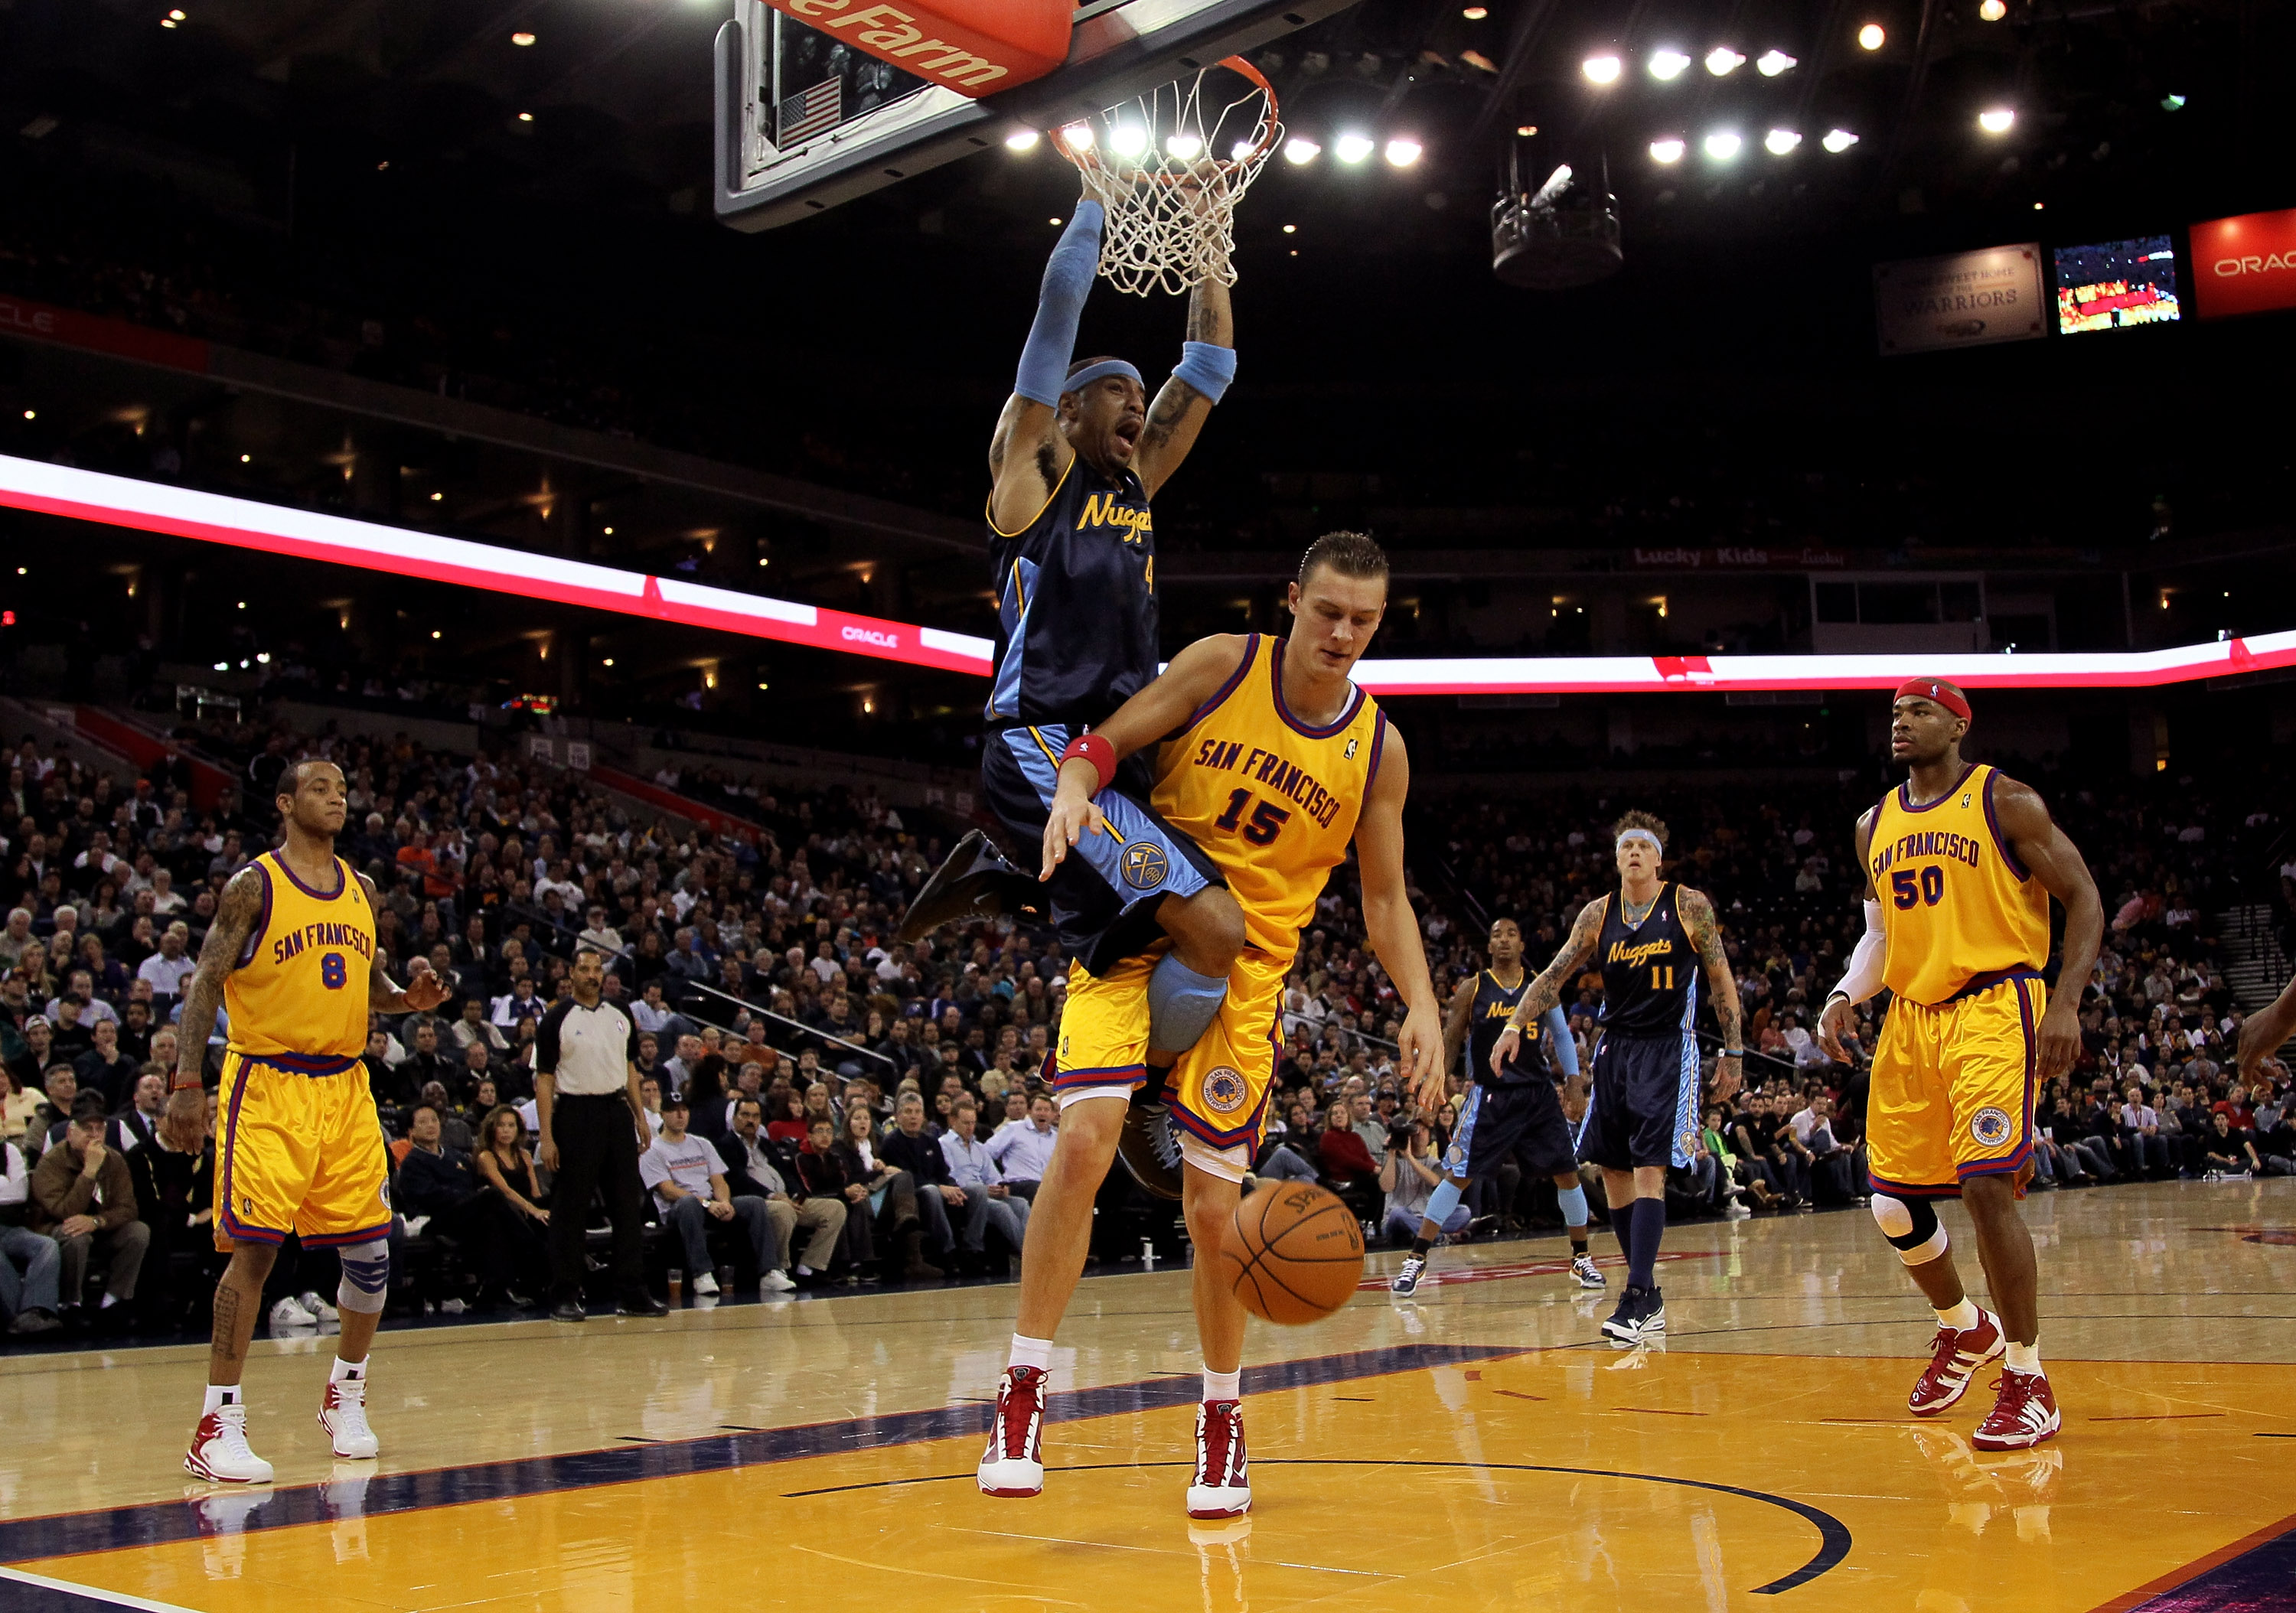 OAKLAND, CA - JANUARY 20:  Kenyon Martin #4 of the Denver Nuggets dunks on Andris Biedrins #15 of the Golden State Warriors at Oracle Arena on January 20, 2010 in Oakland, California.  NOTE TO USER: User expressly acknowledges and agrees that, by download